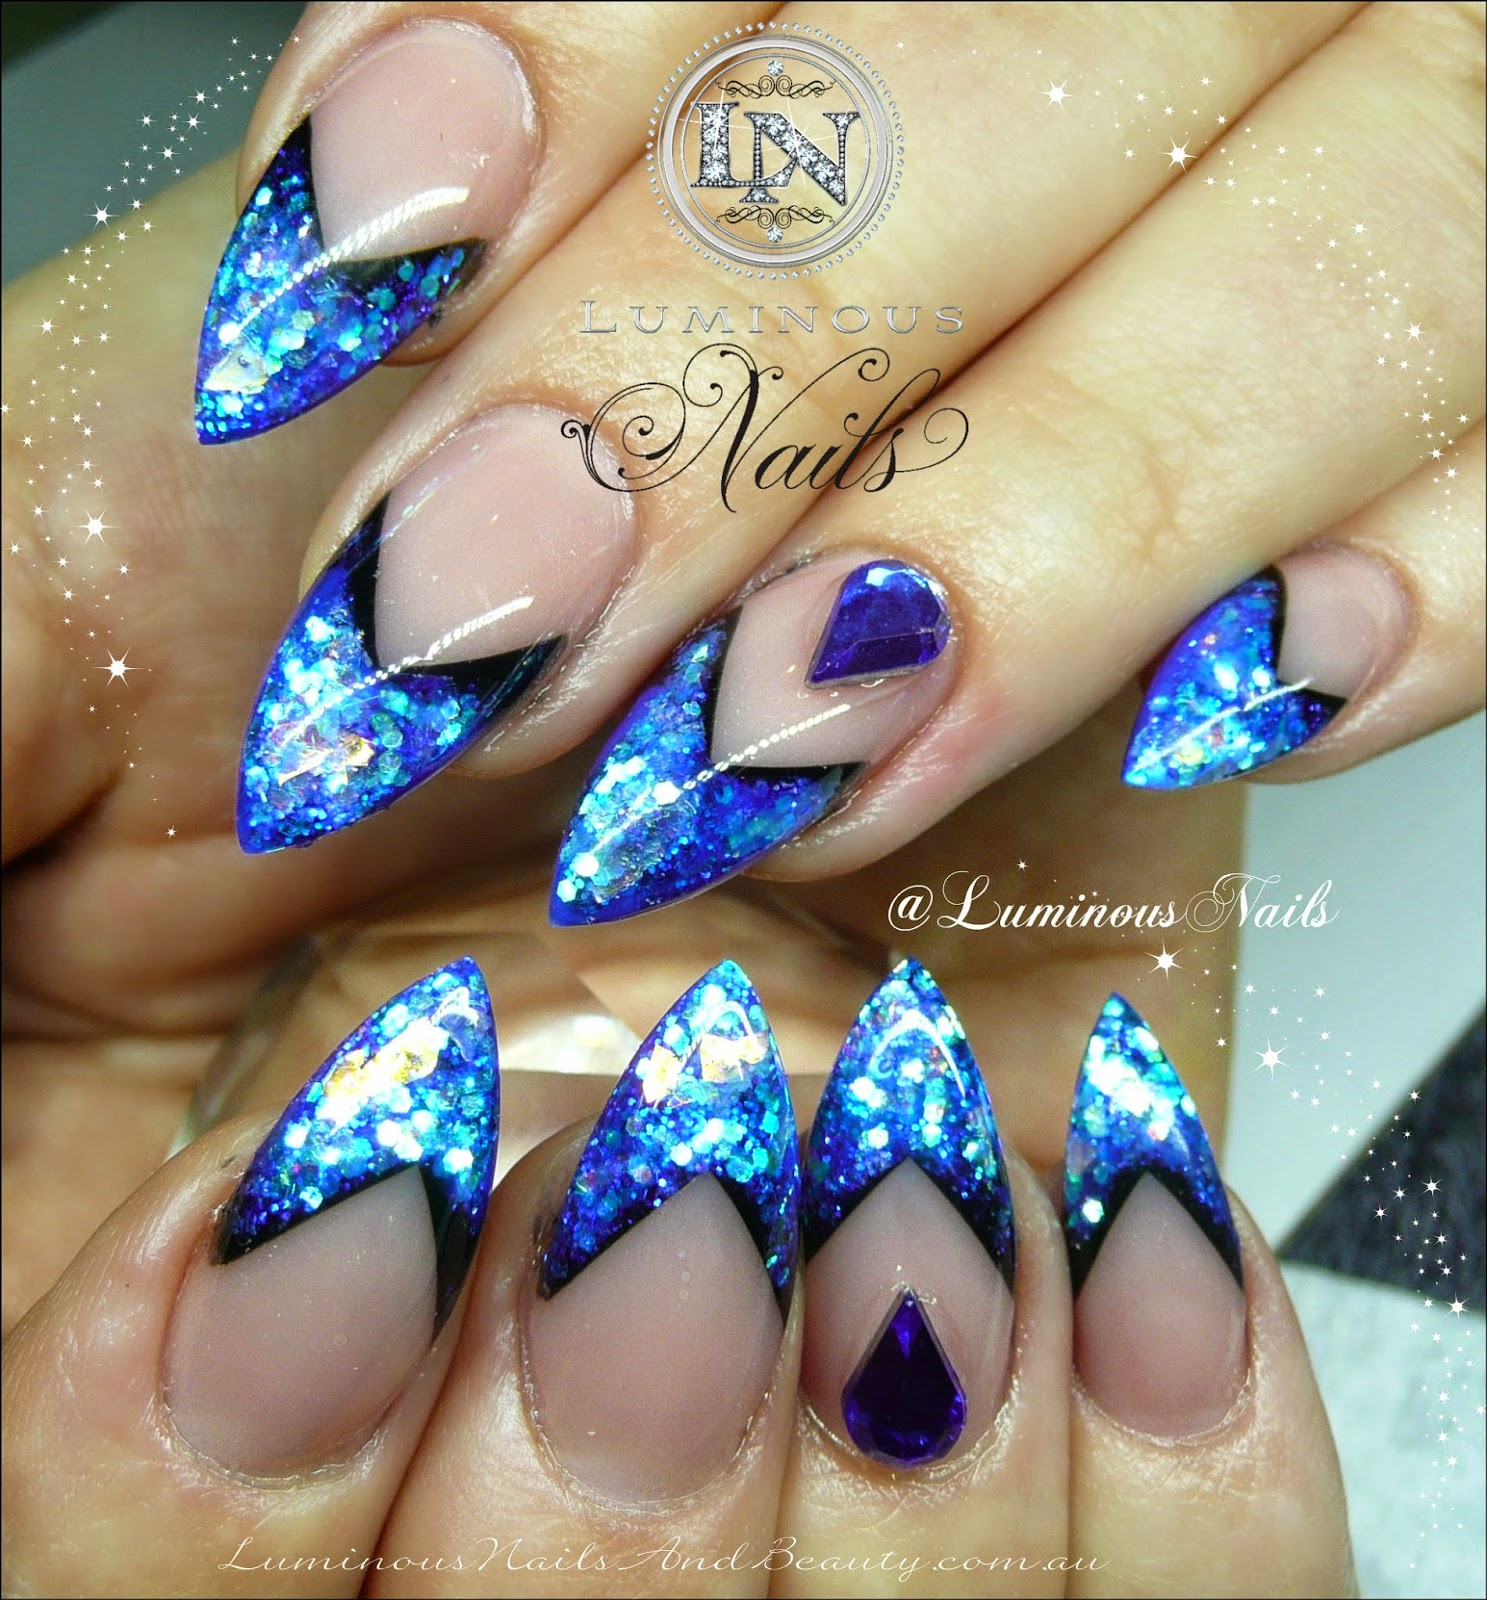 Royal blue and silver nail designs nail art gallery blue and white nail art photos prinsesfo Images